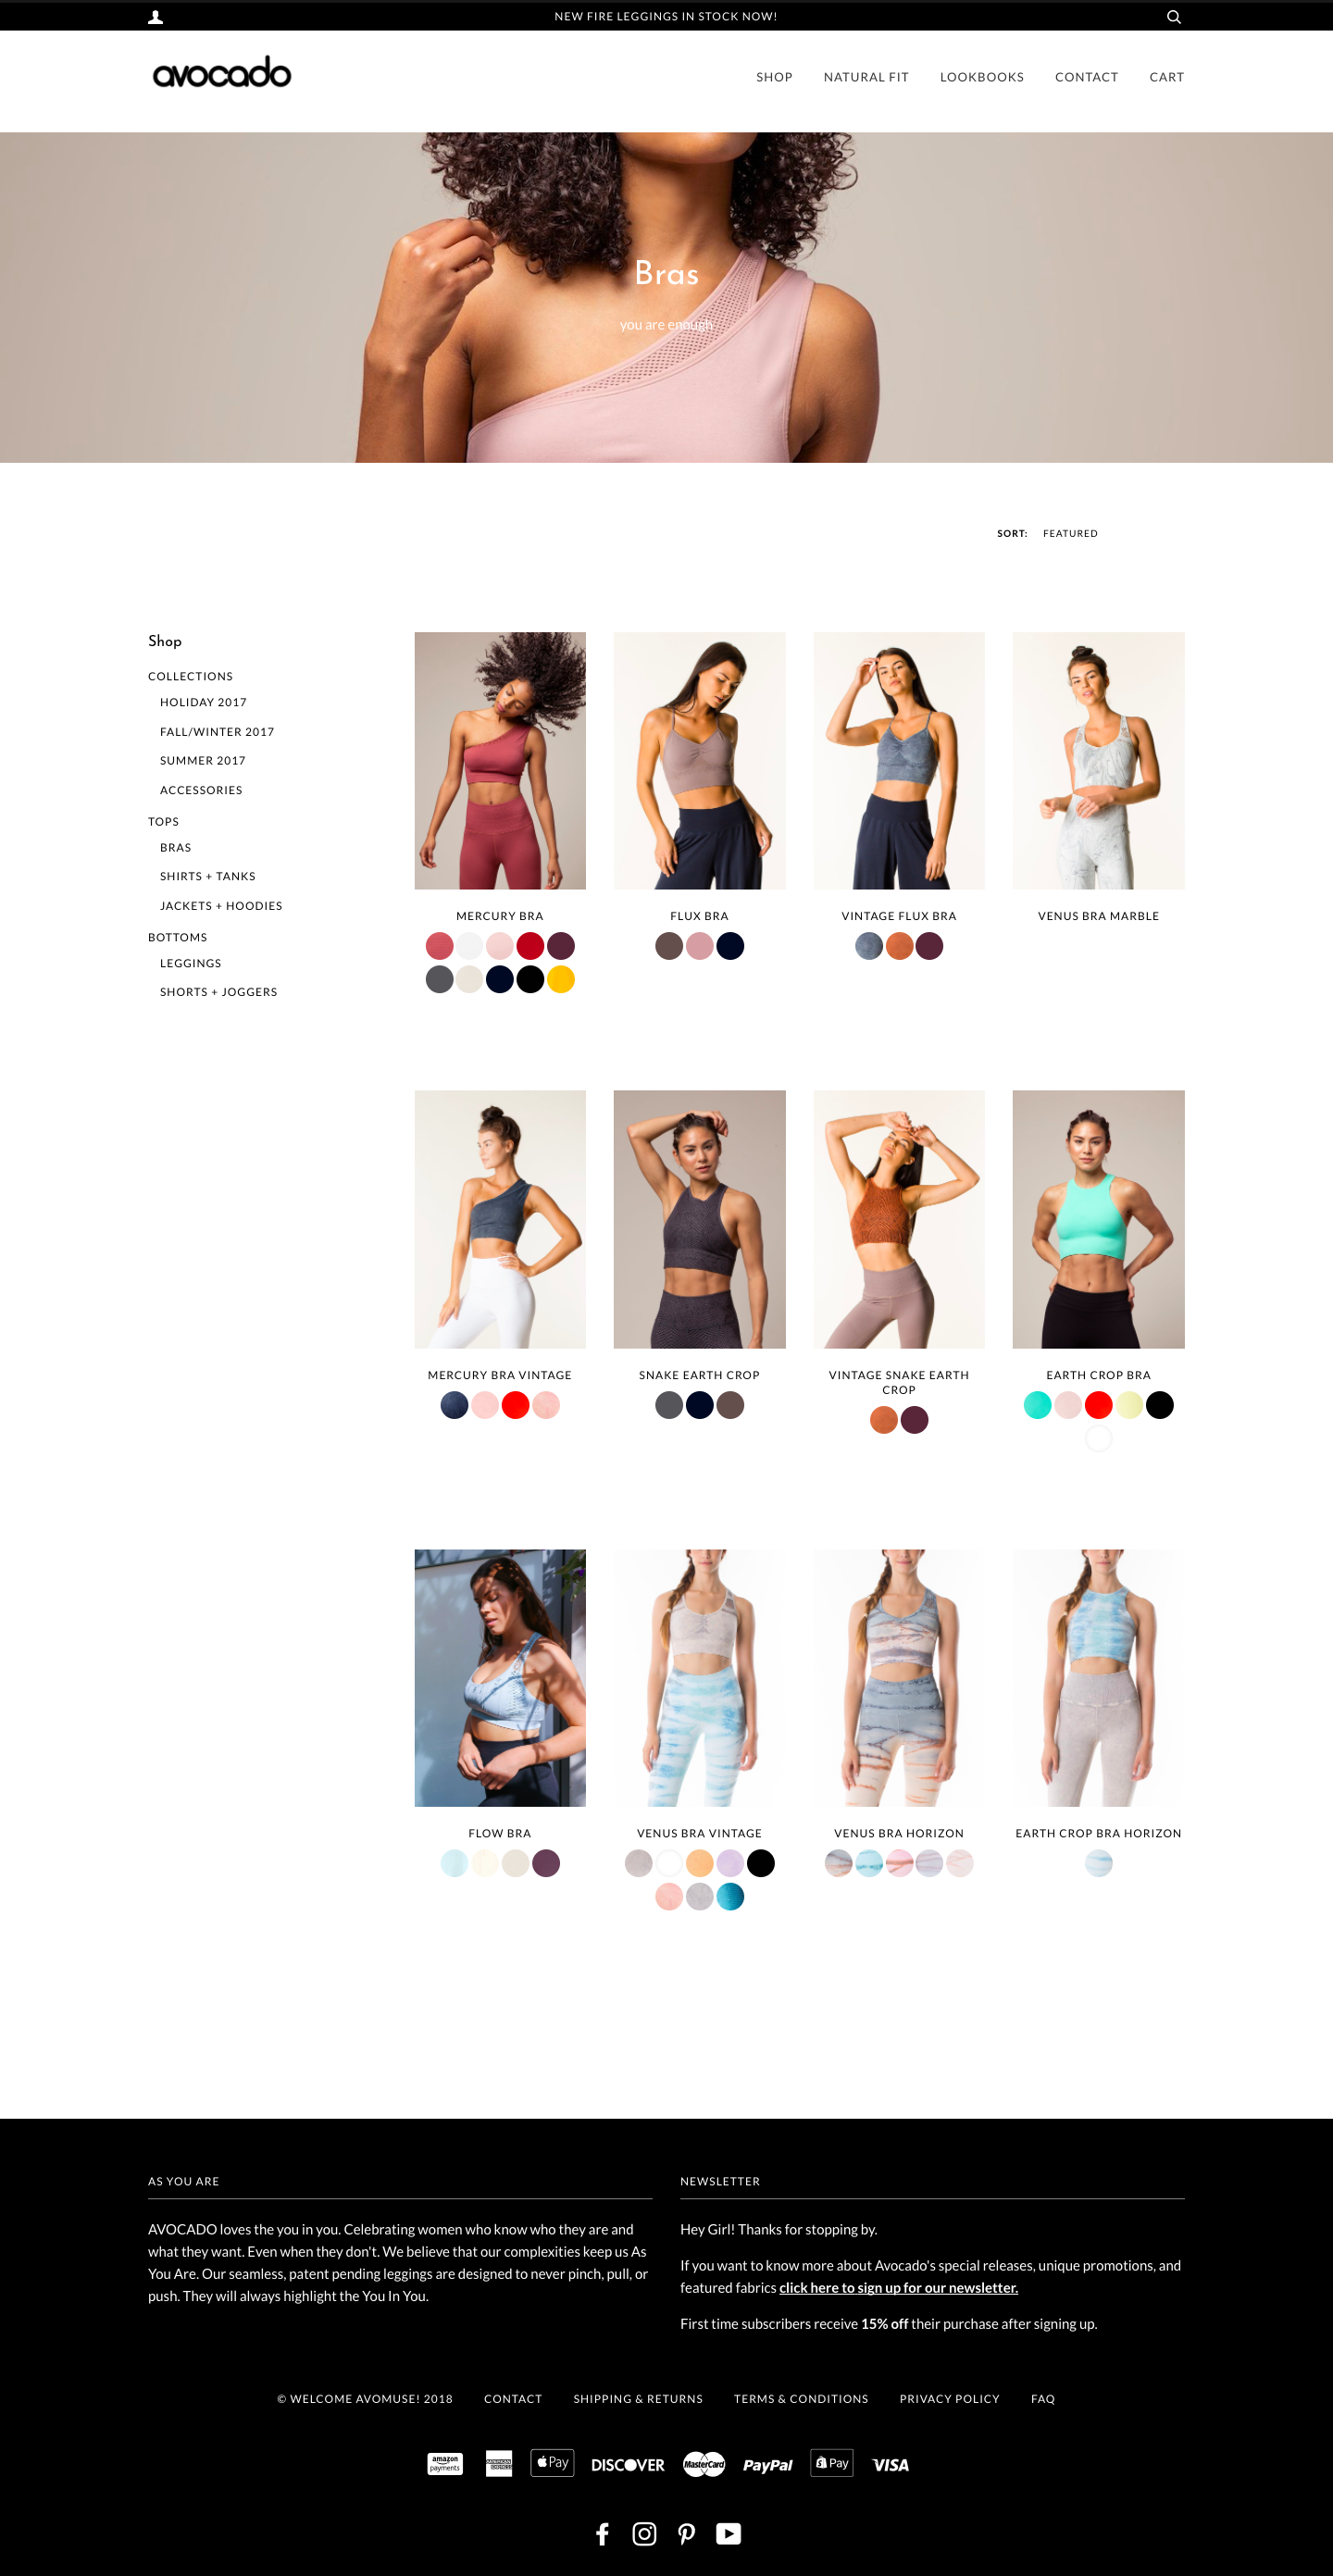 screencapture-shopavocado-collections-bras-1517360163823.png